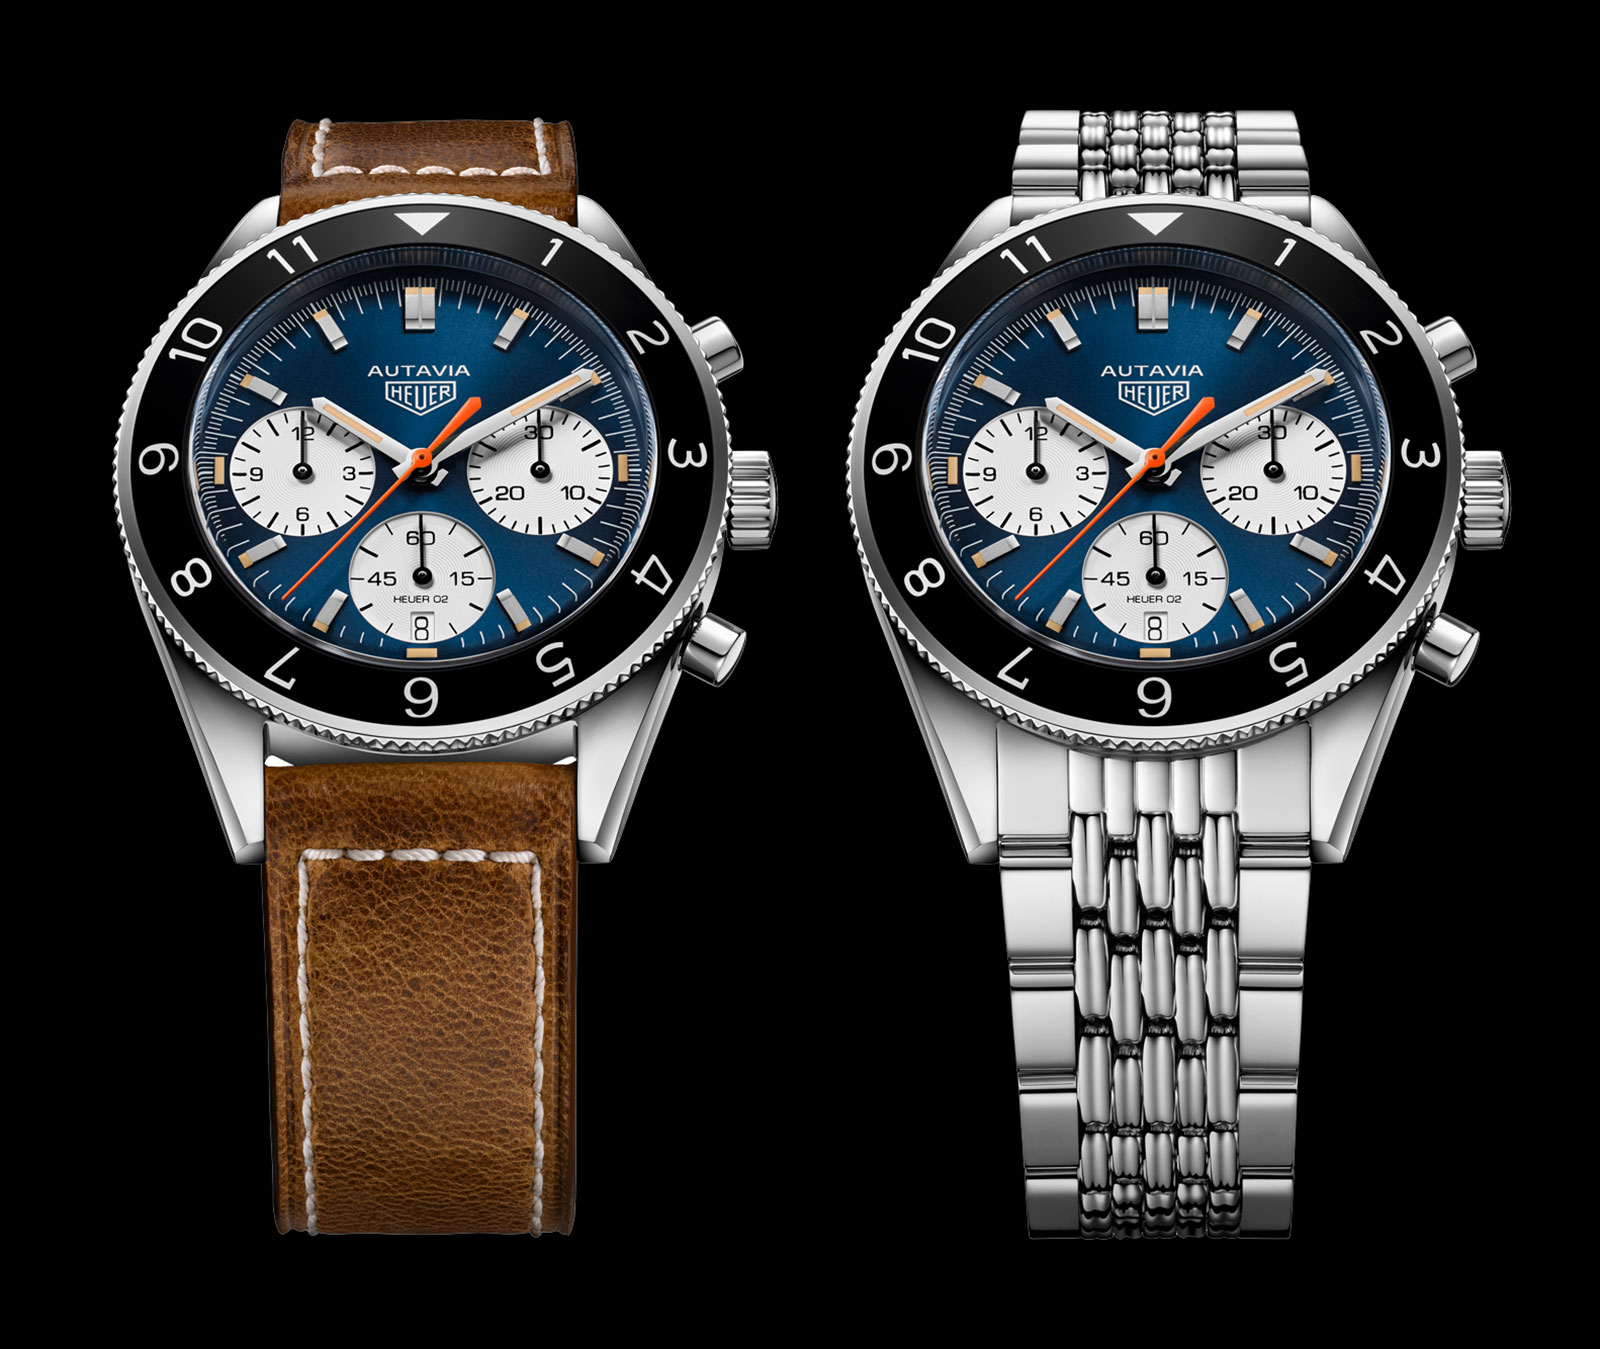 Introducing The Tag Heuer Autavia Watches Of Switzerland